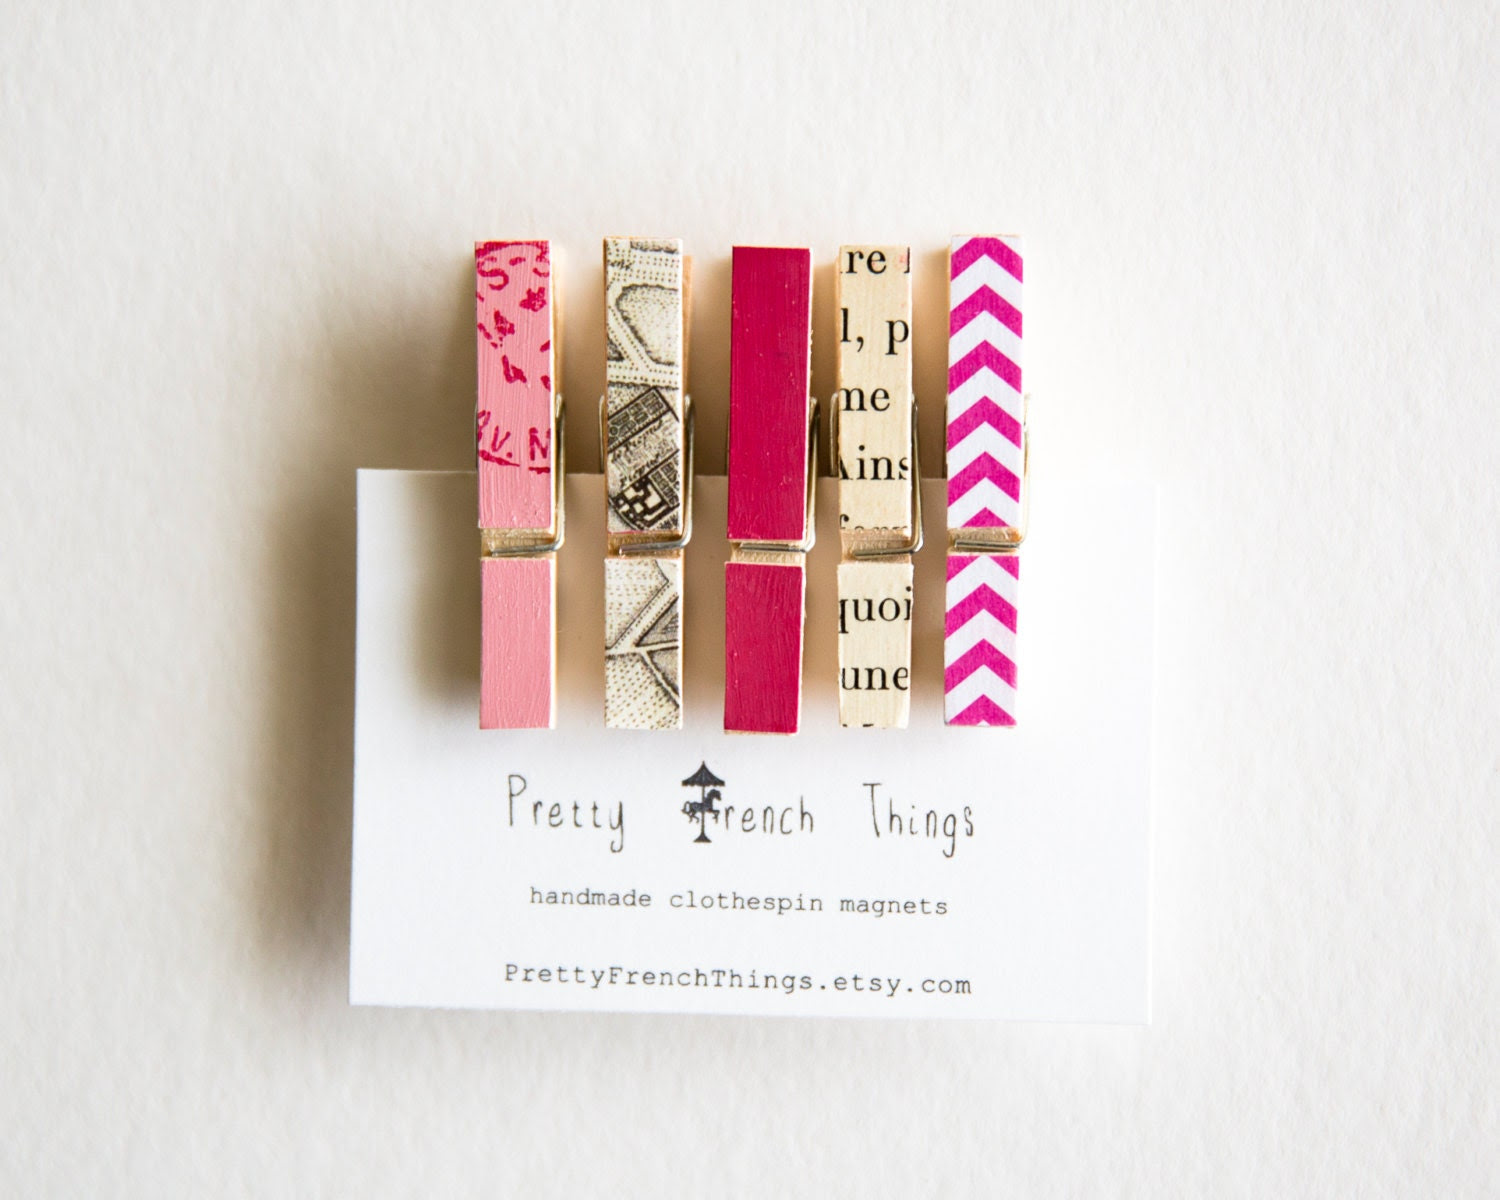 Mini Clothespin Magnets in Pink - PrettyFrenchThings